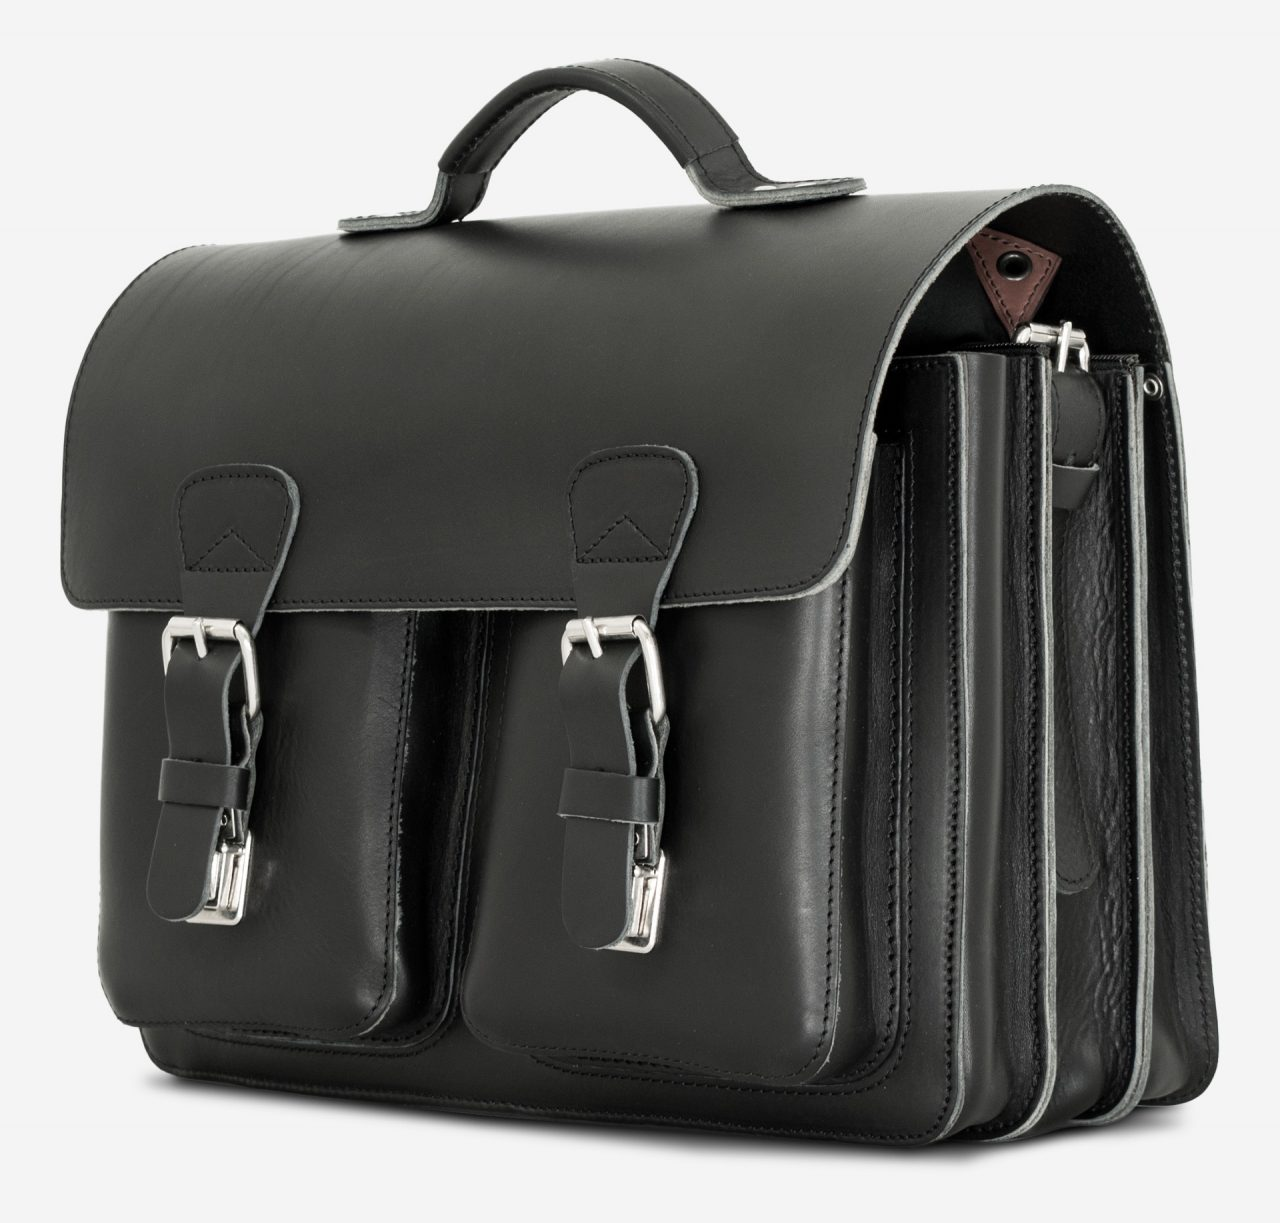 Side view of large black leather briefcase with 3 compartments and asymmetric front pockets 112142.